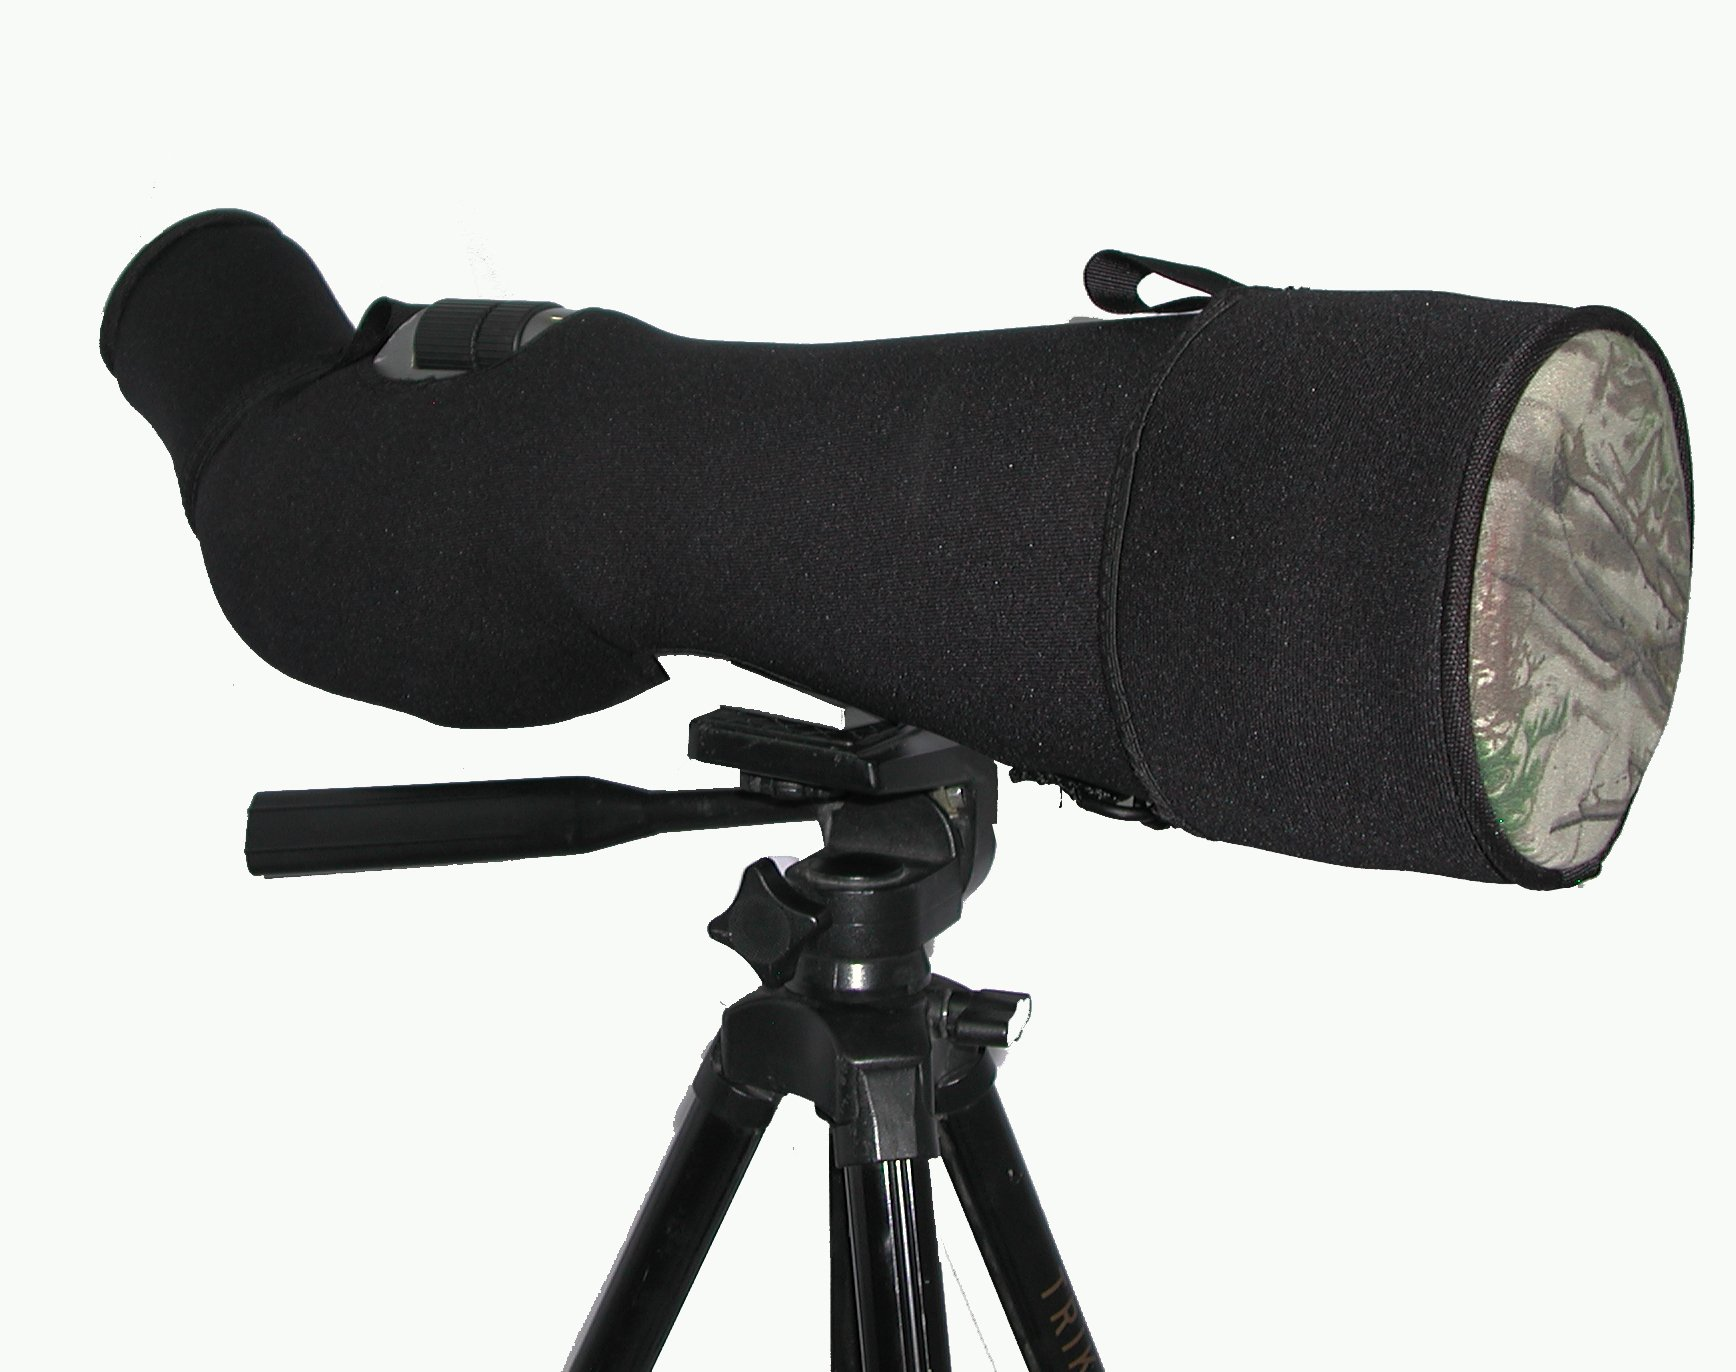 Snugfit Scope Skin Swarovski (65-mm, Angled)